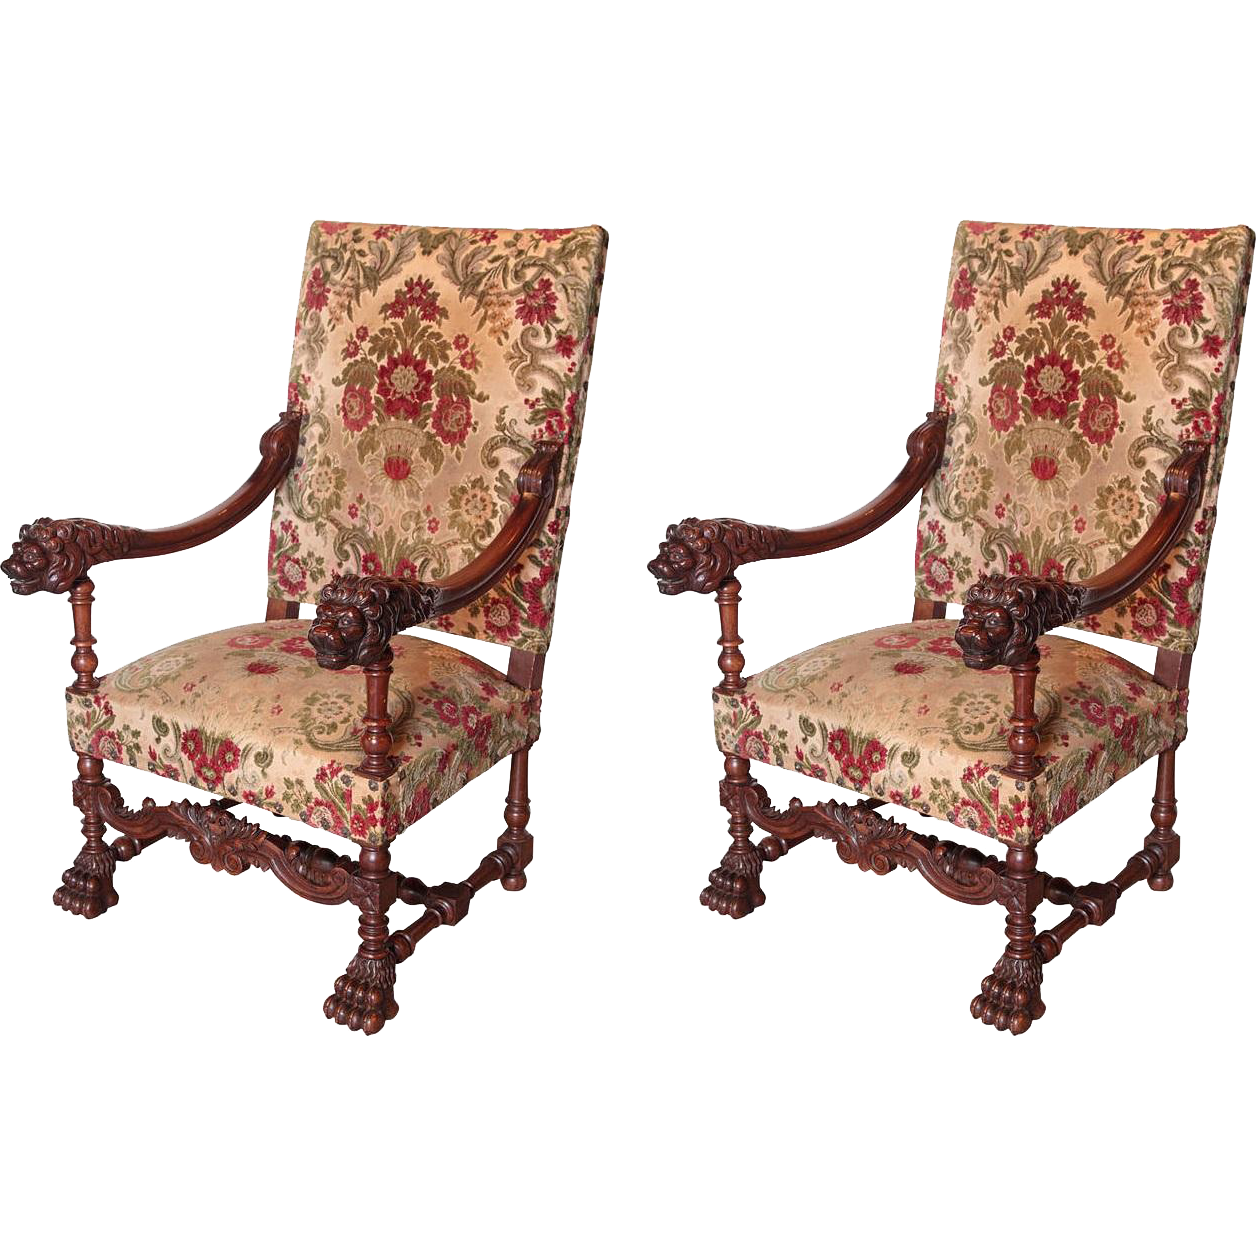 Pair of Antique Louis XIV Style Walnut Wood Armchairs from France